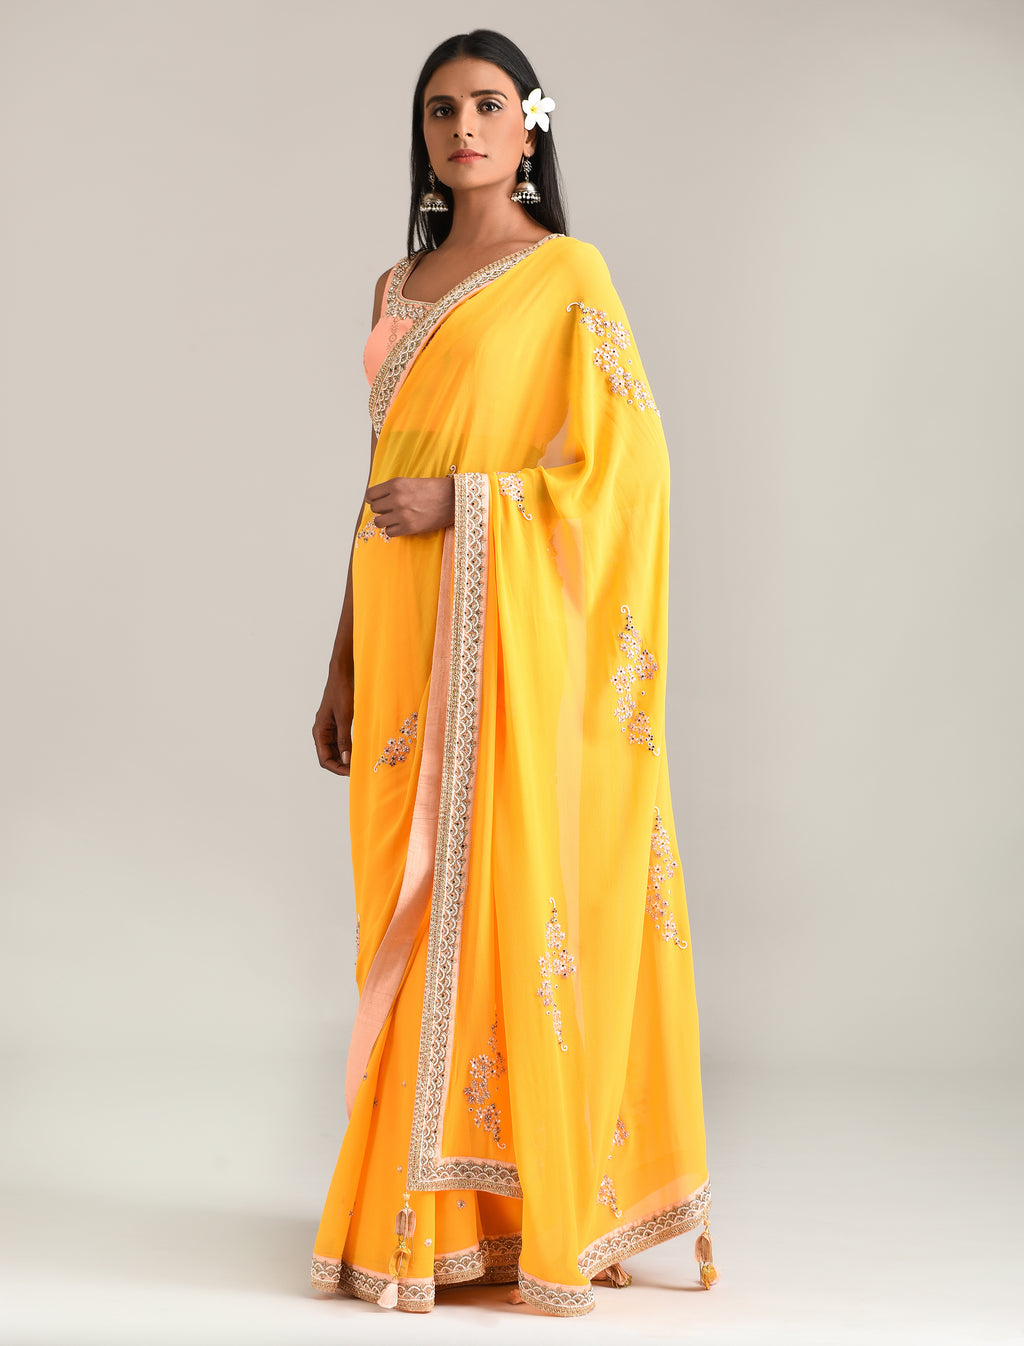 MADSAM TINZIN SUNRISE ORANGE EMBROIDERED SAREE